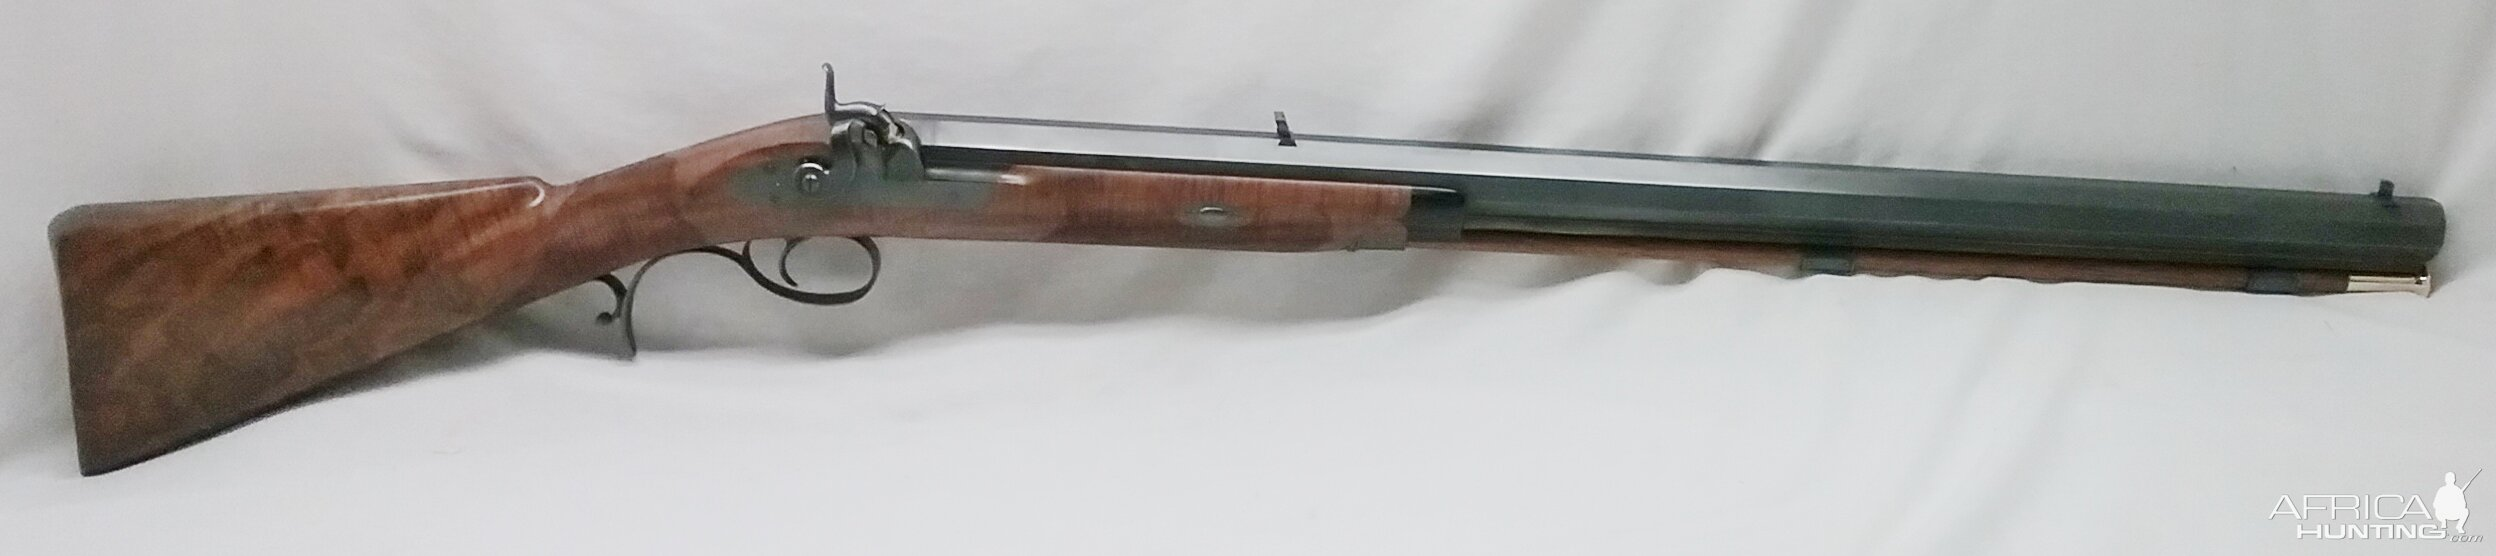 8 Bore Rifle by Hollie Wessel